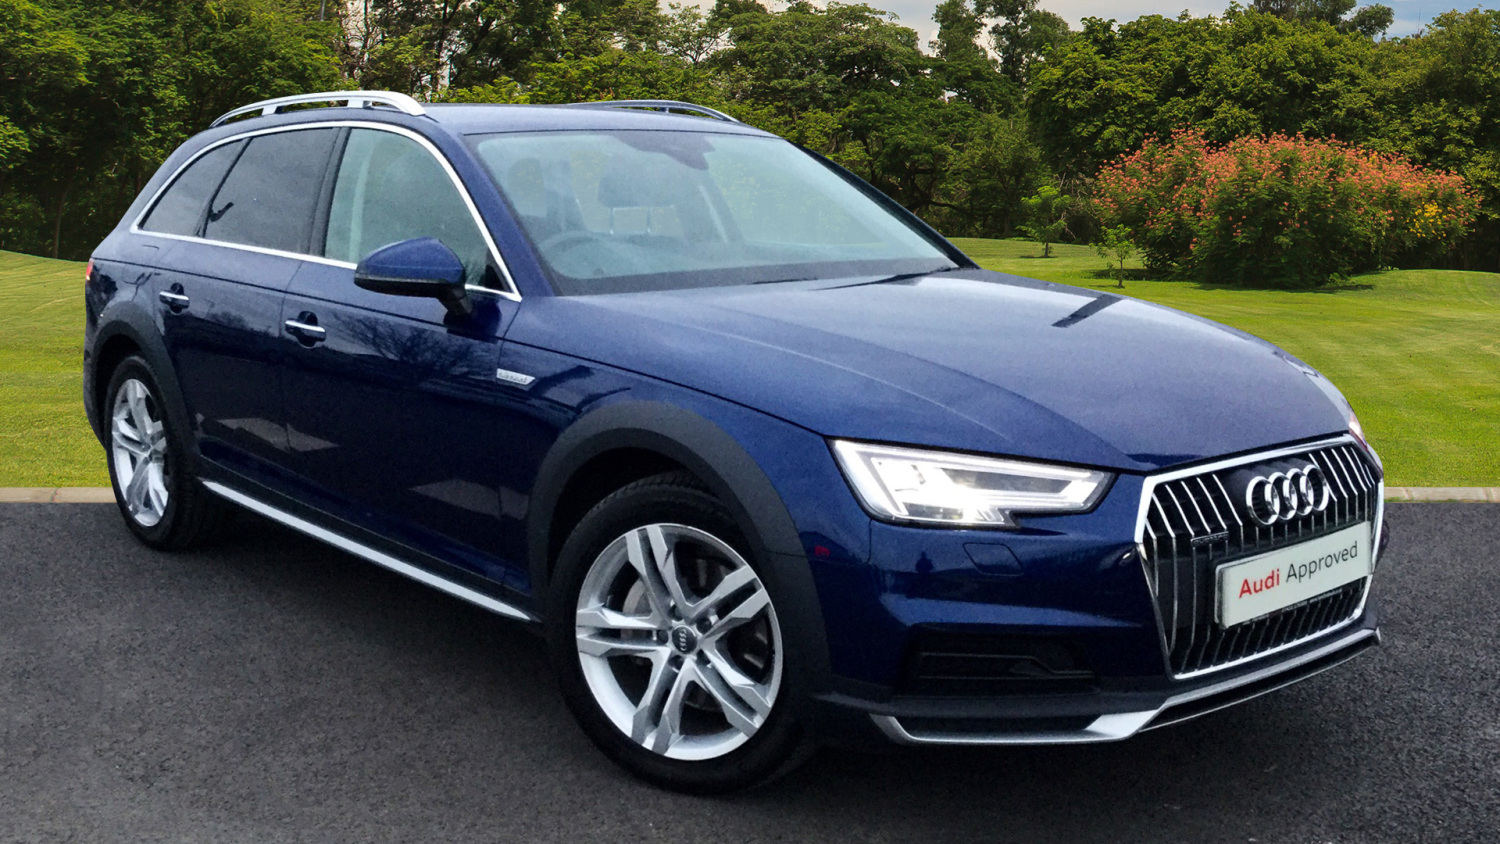 Used Audi A4 Allroad 2.0 Tdi Quattro Sport 5Dr S Tronic Diesel Estate for Sale | Hereford Audi